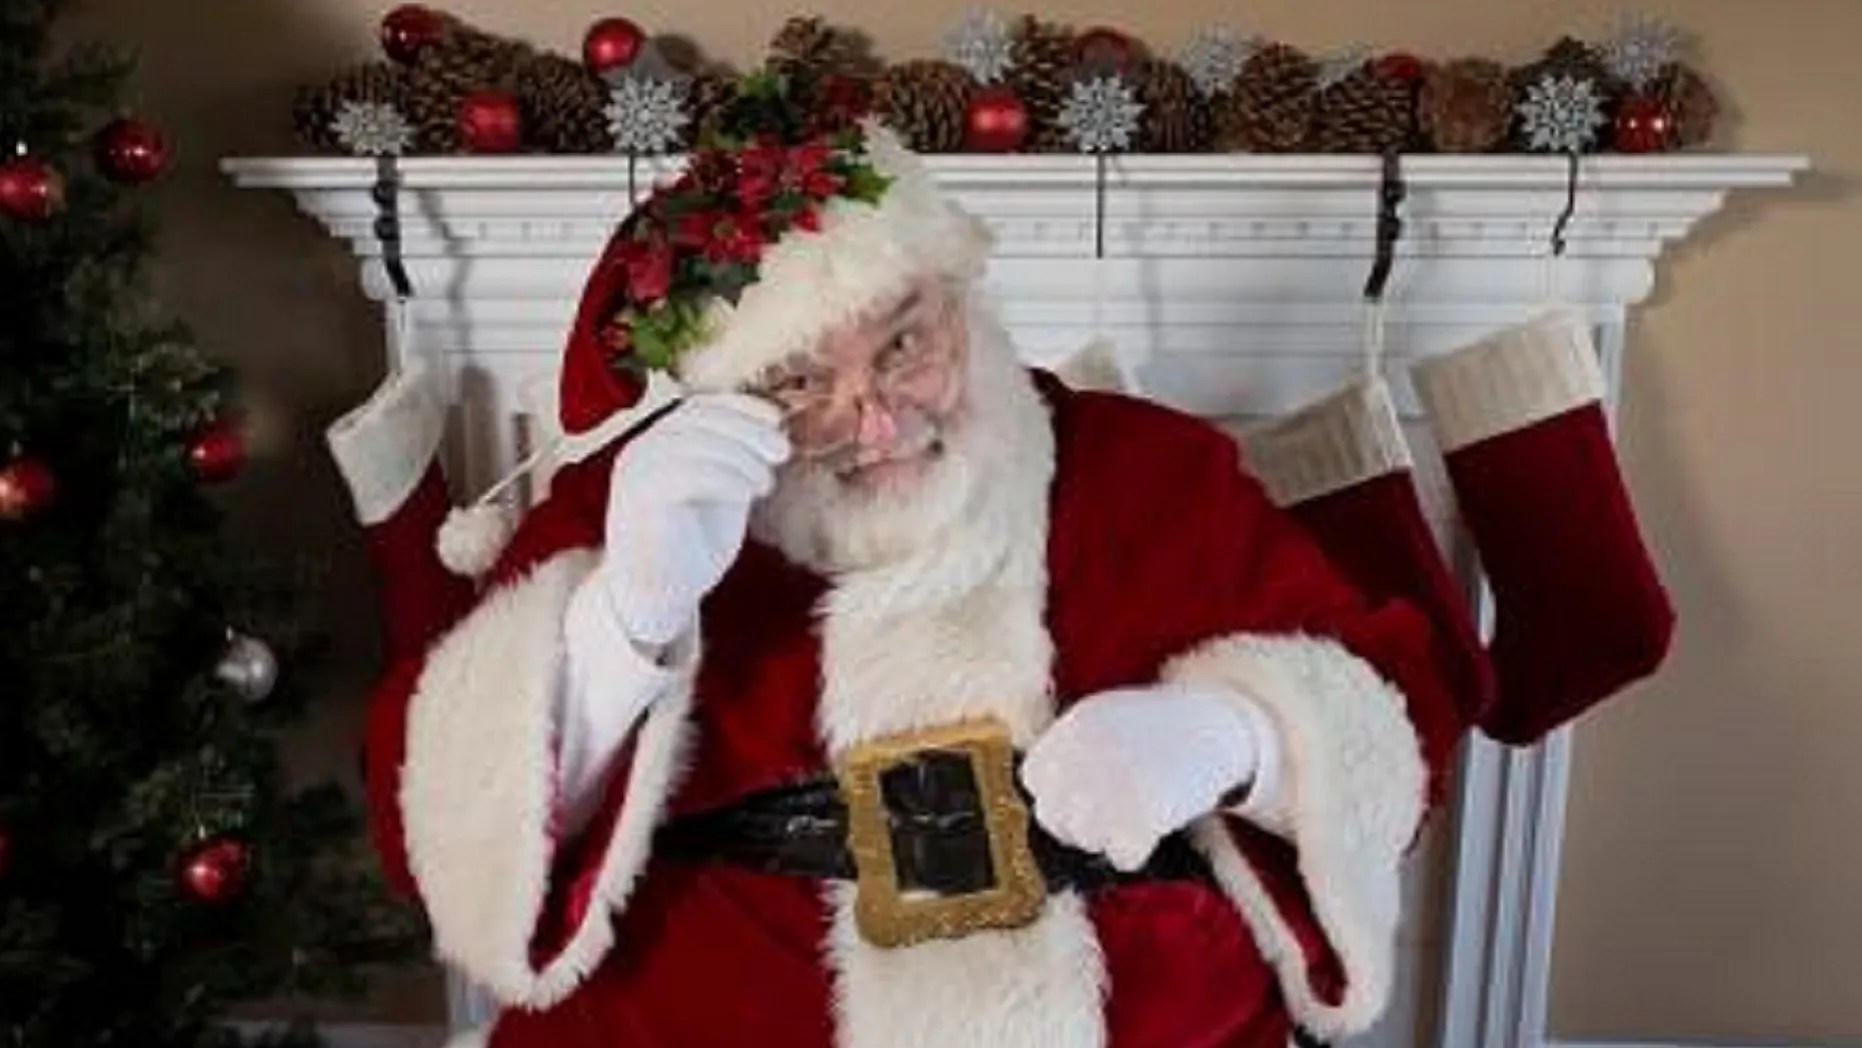 FILE: Santa visits a home. A substitute teacher in New Jersey will not be returning to the Montville Township Public Schools, the superintendent said Tuesday.